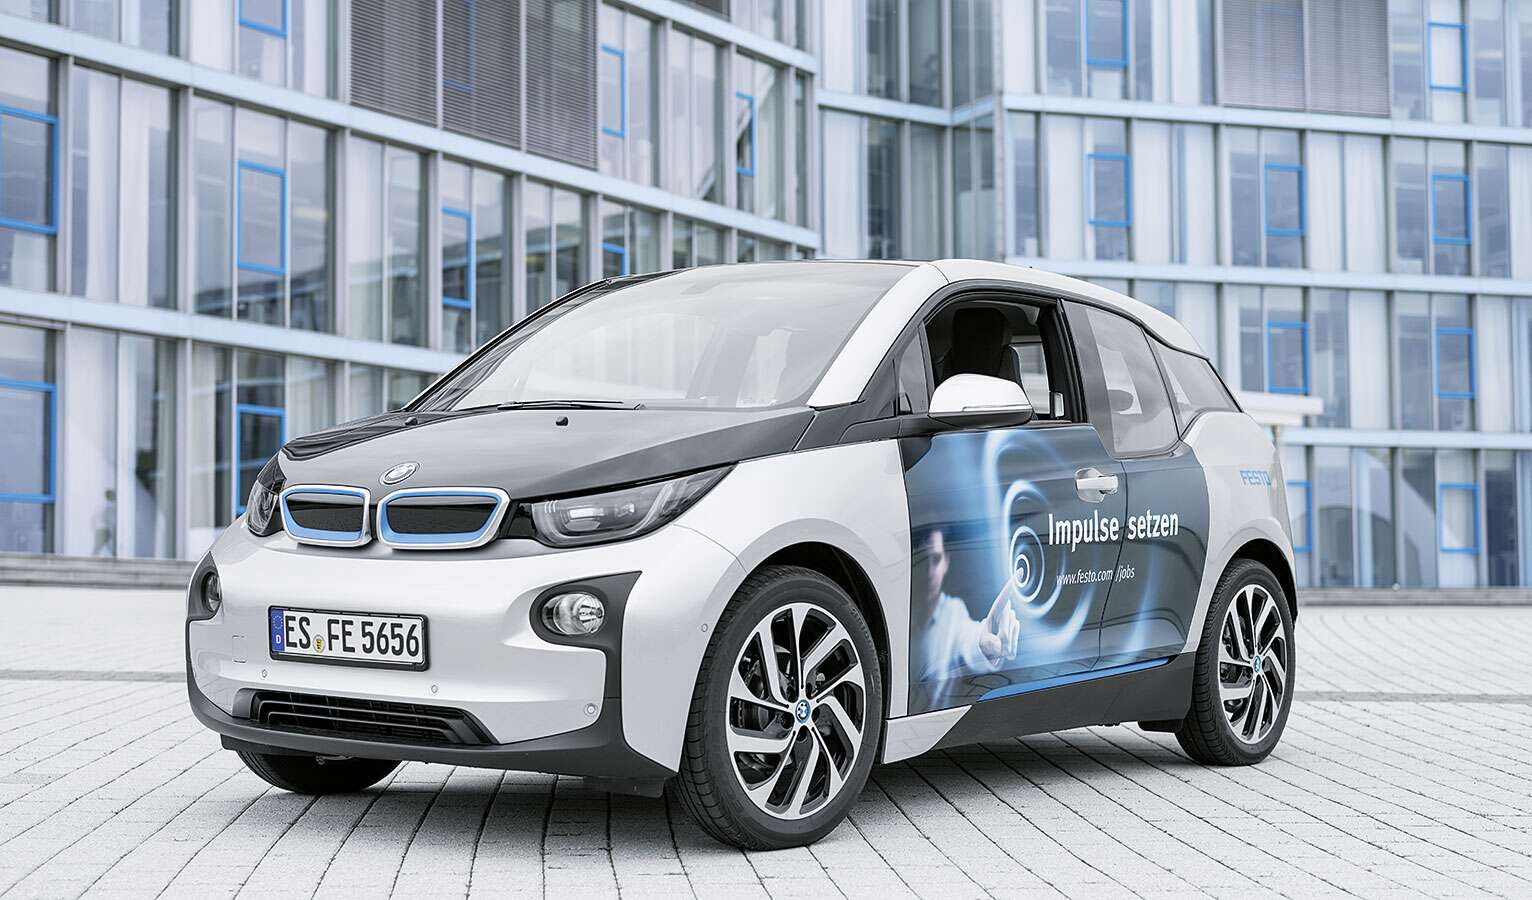 There are also electric cars in the Festo fleet